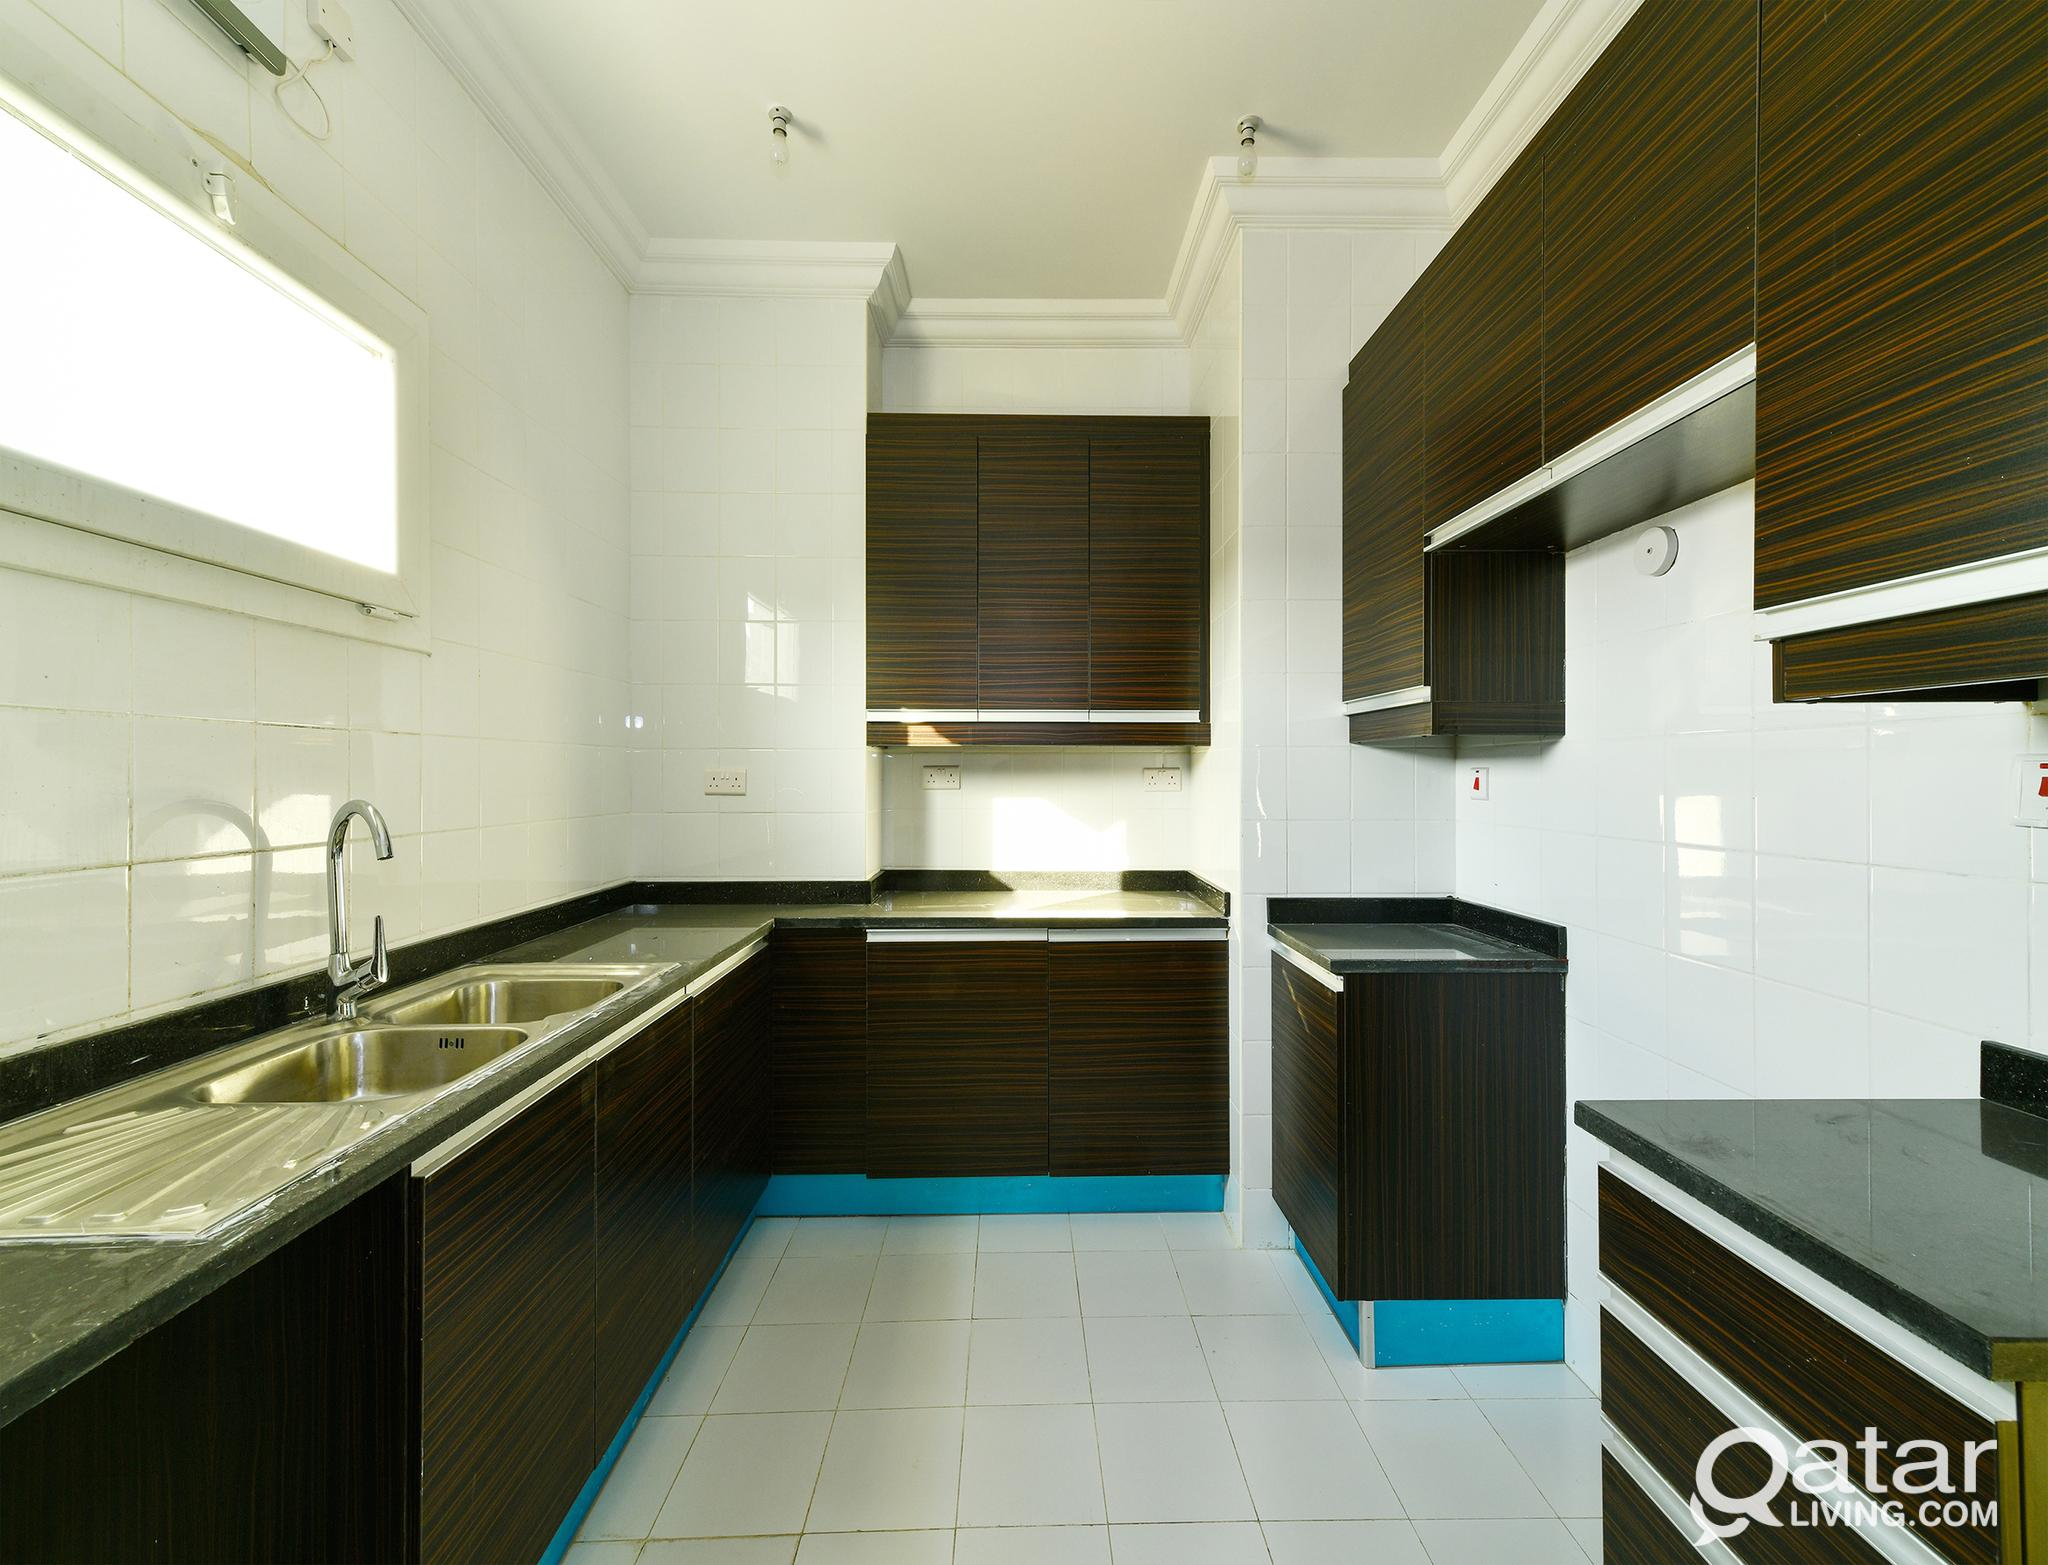 For rent 3 BHK in Al-Najma area 4Rent